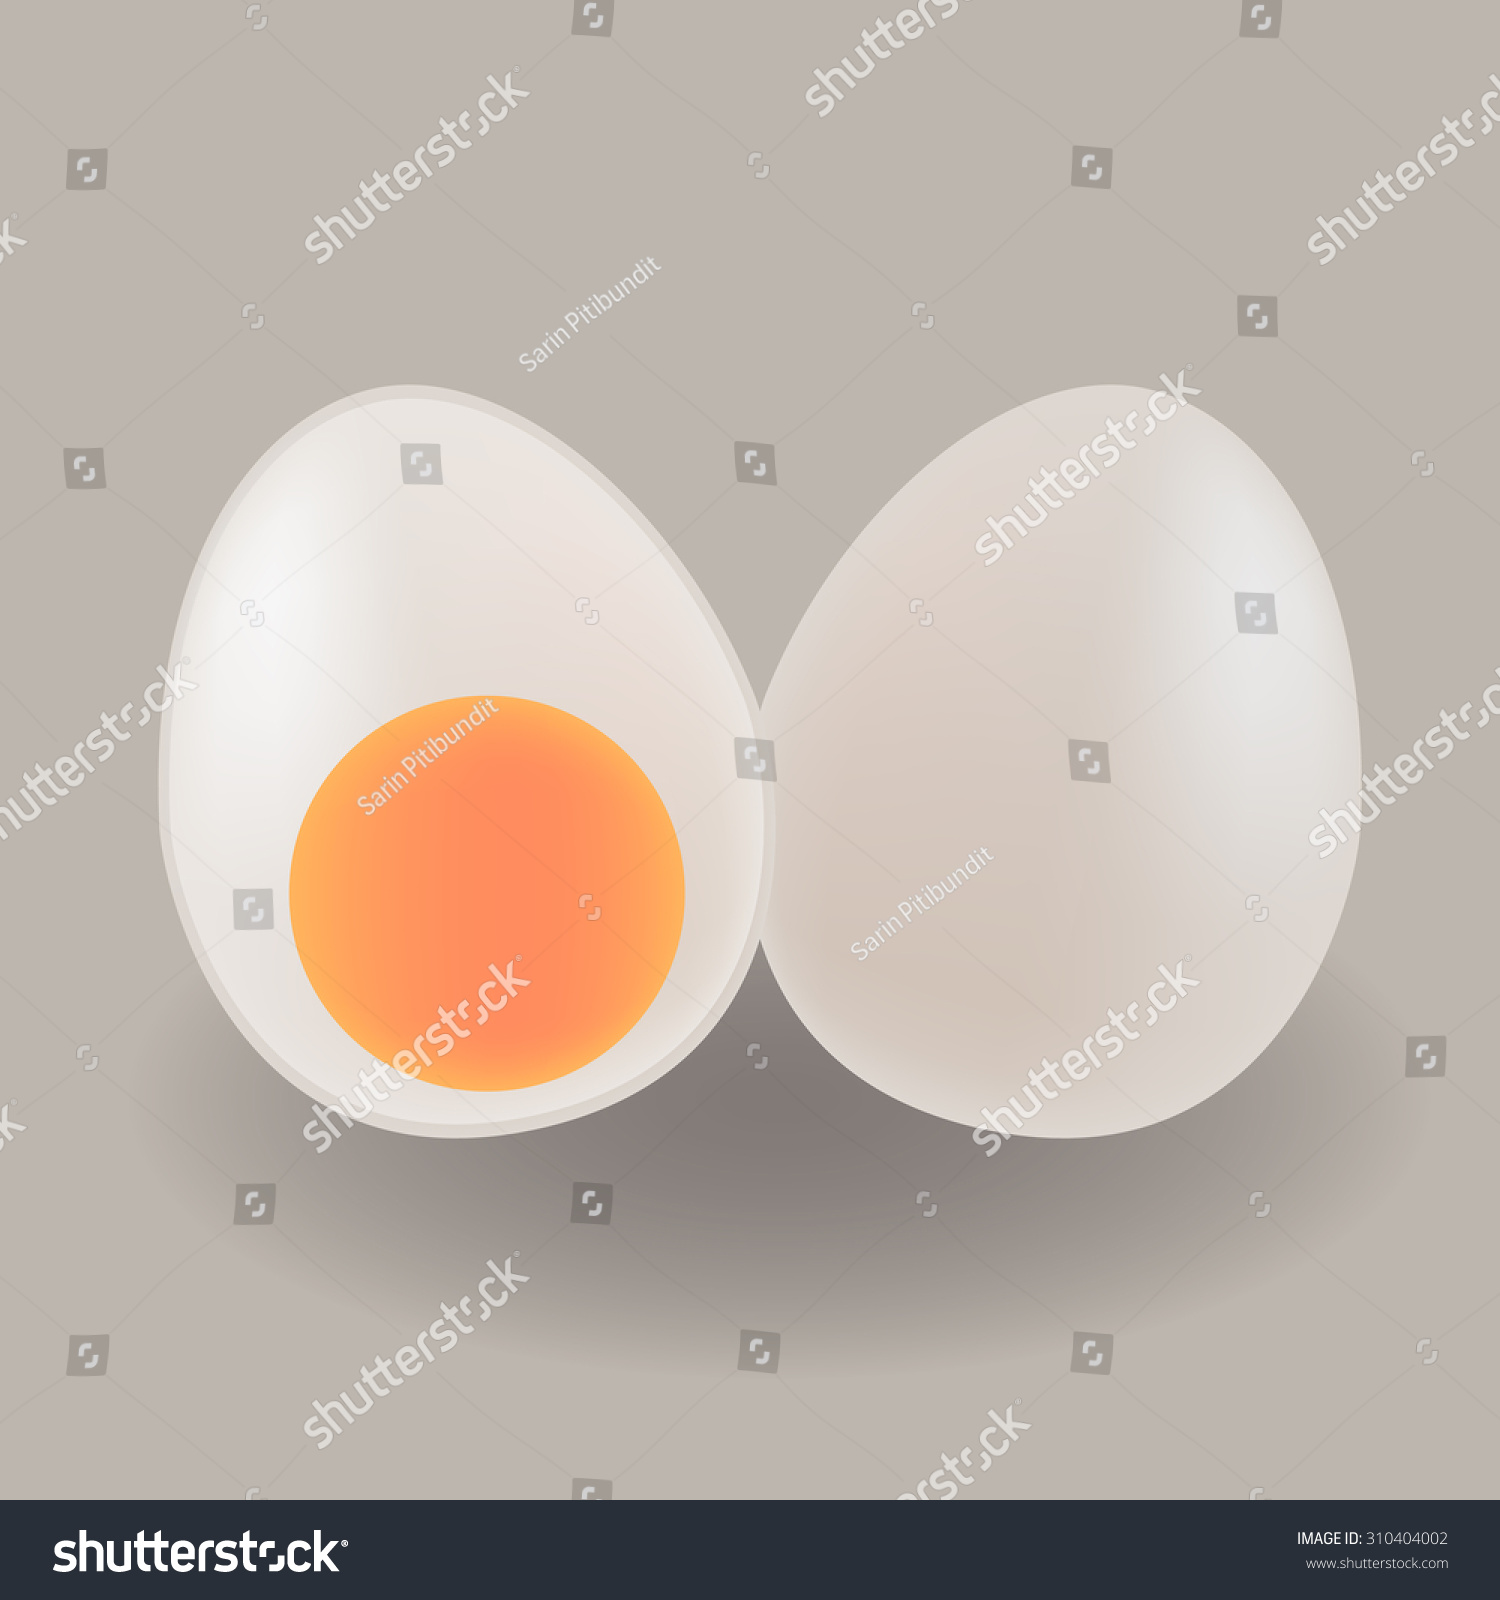 stock vector cute boiled white duck egg white egg and yolk section in front view 310404002 cute boiled white duck egg white stock vector (royalty free